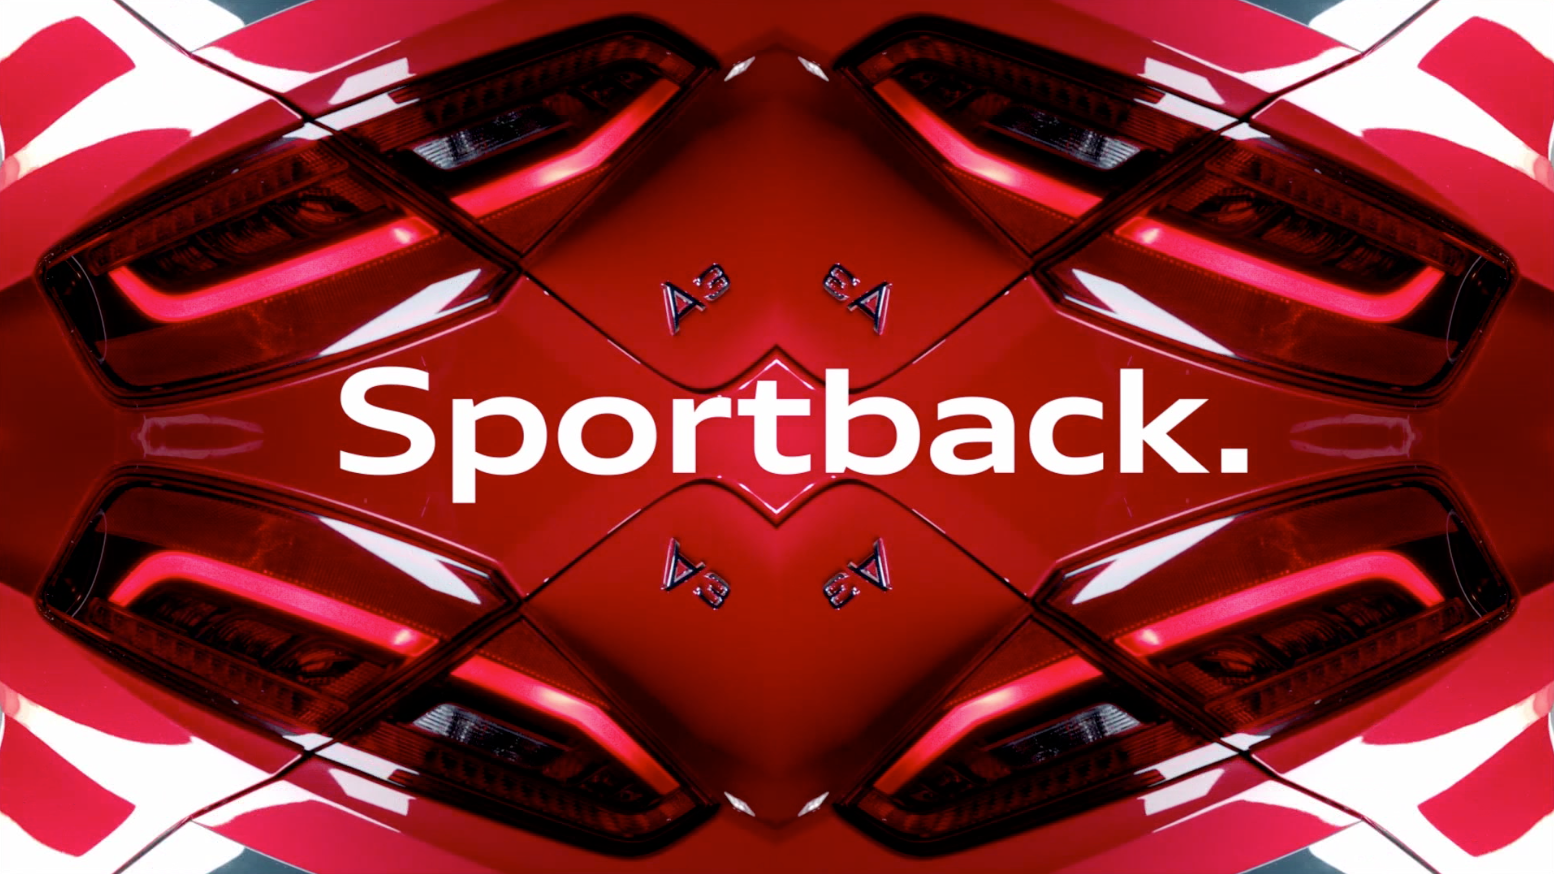 New-Audi-A3-Sportback-2013-Daft-Punk-1